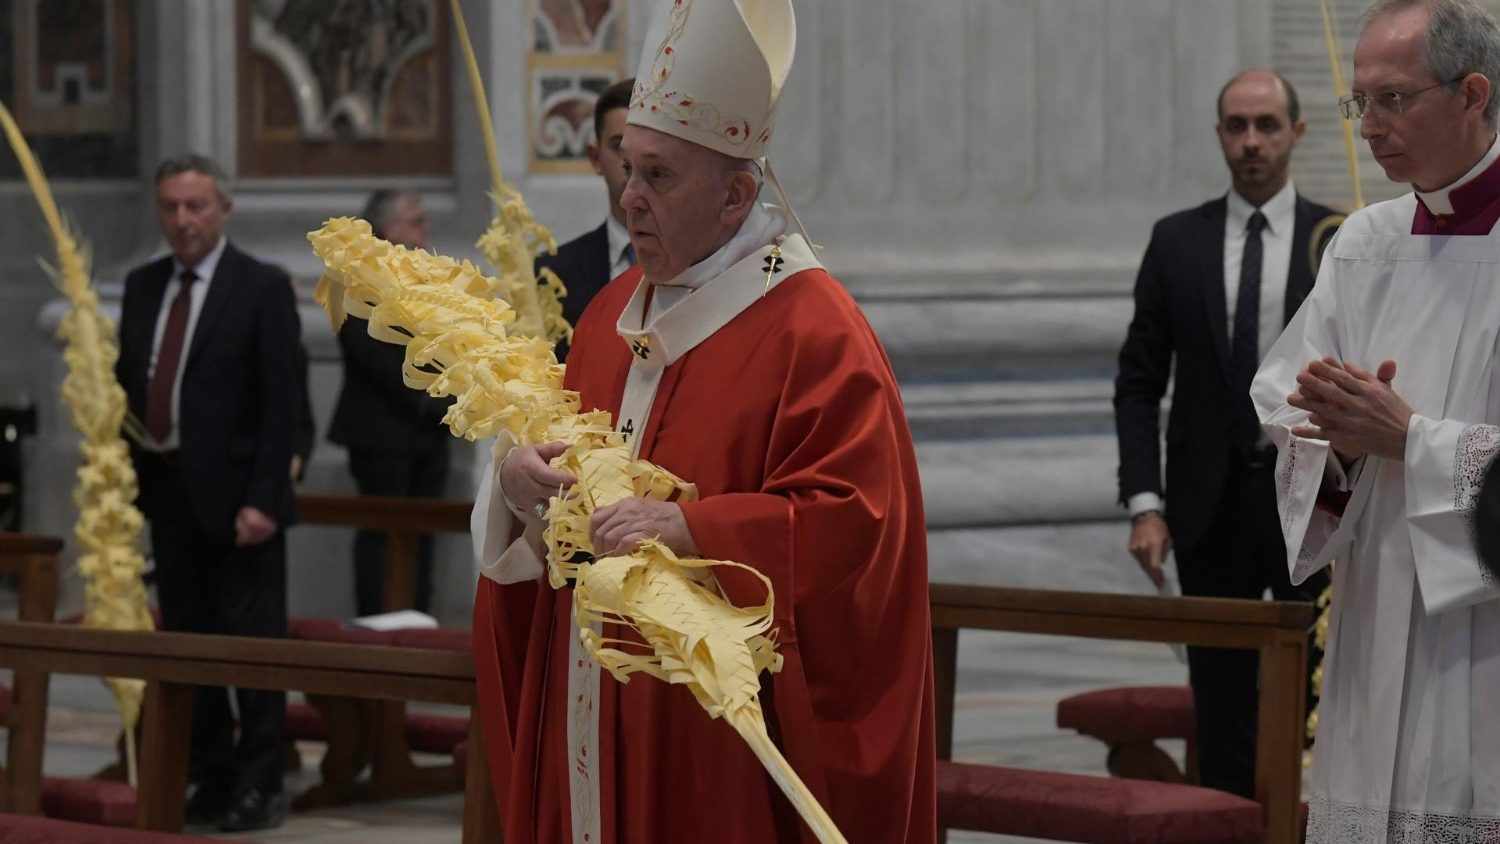 FULL TEXT | Homily of Pope Francis during Palm Sunday Mass on March 28, 2021